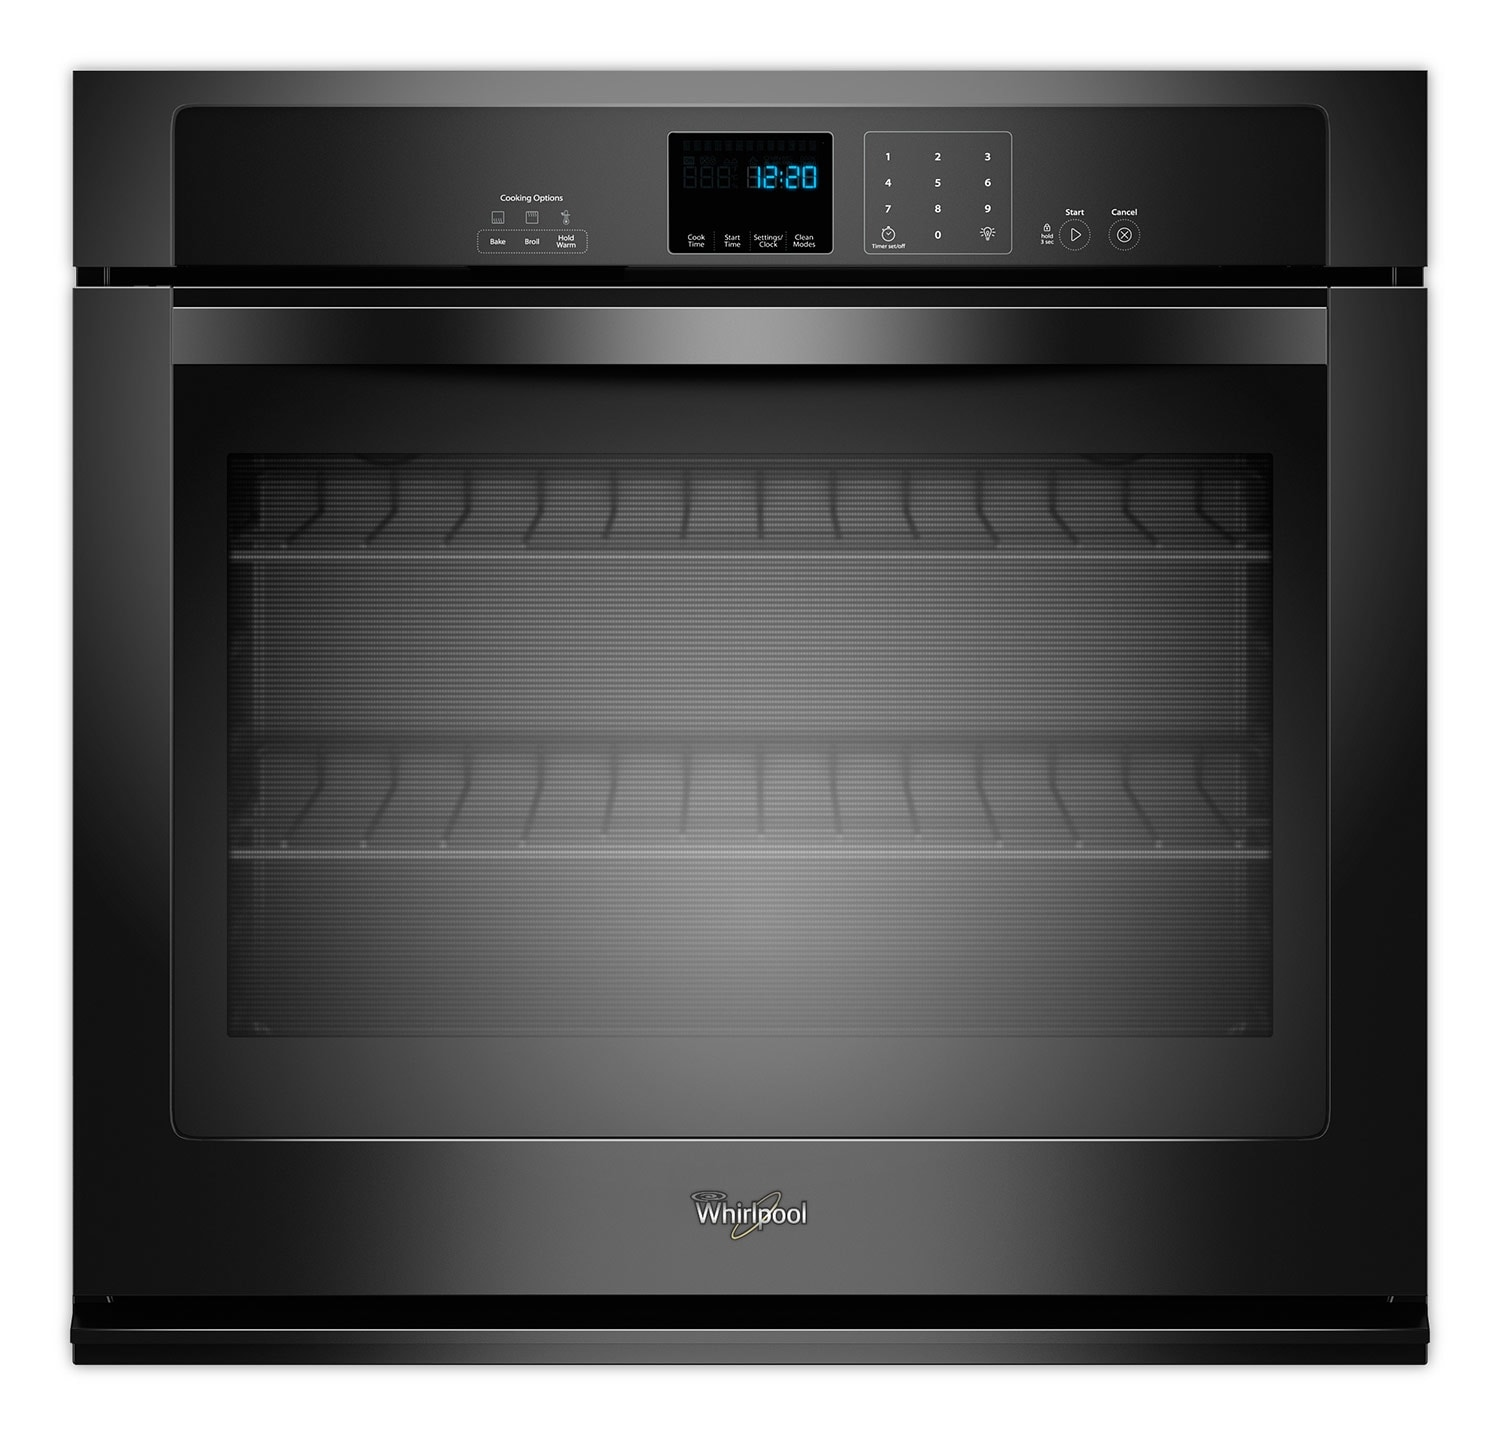 Whirlpool Black Wall Oven (5.0 Cu. Ft.) - WOS51EC0AB